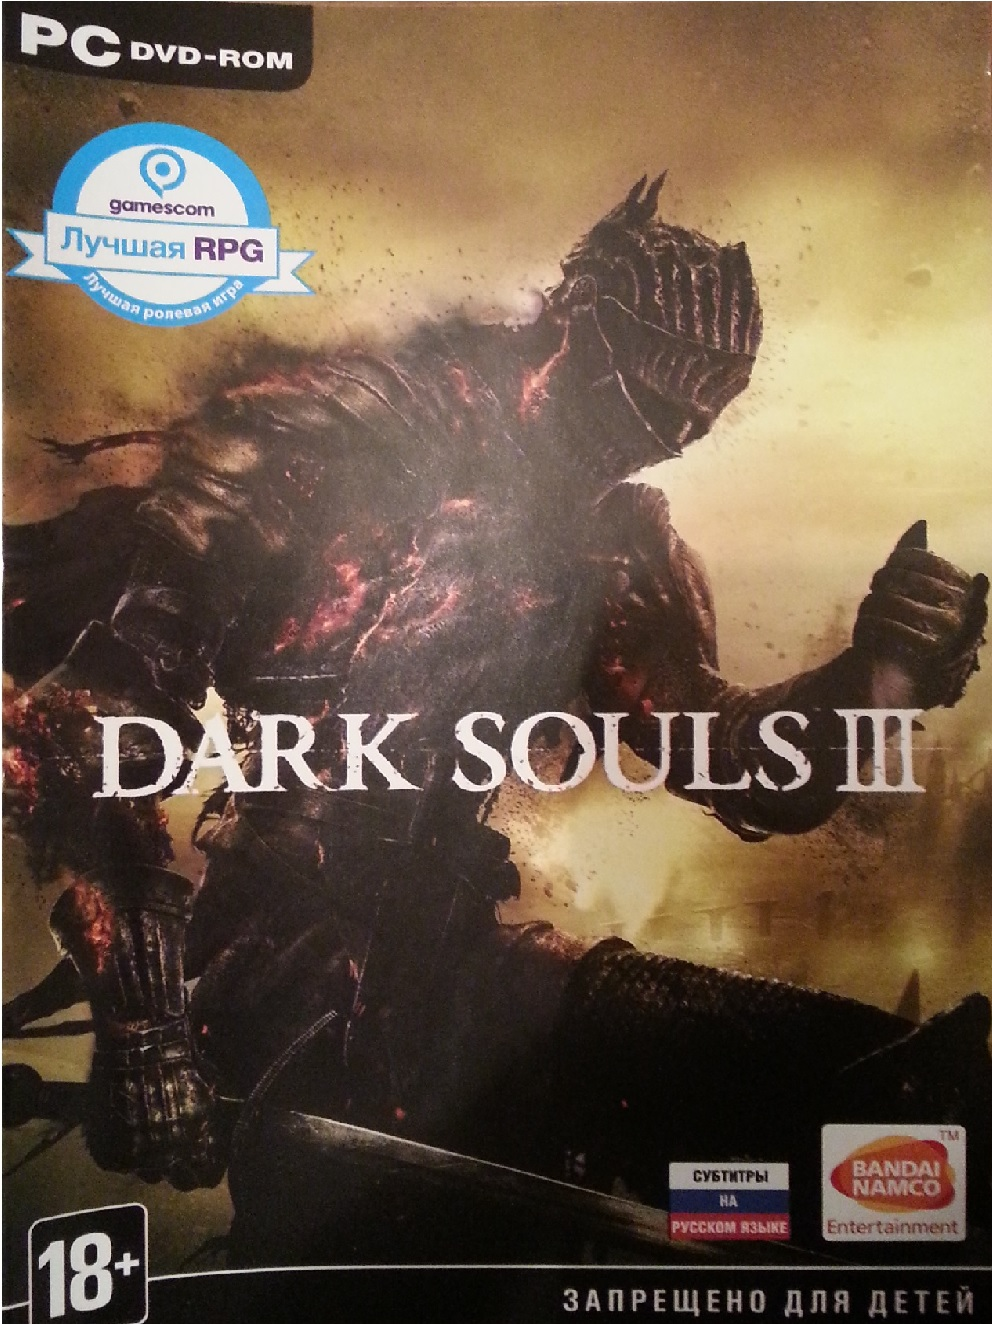 Dark Souls III (steam key) CIS RUS